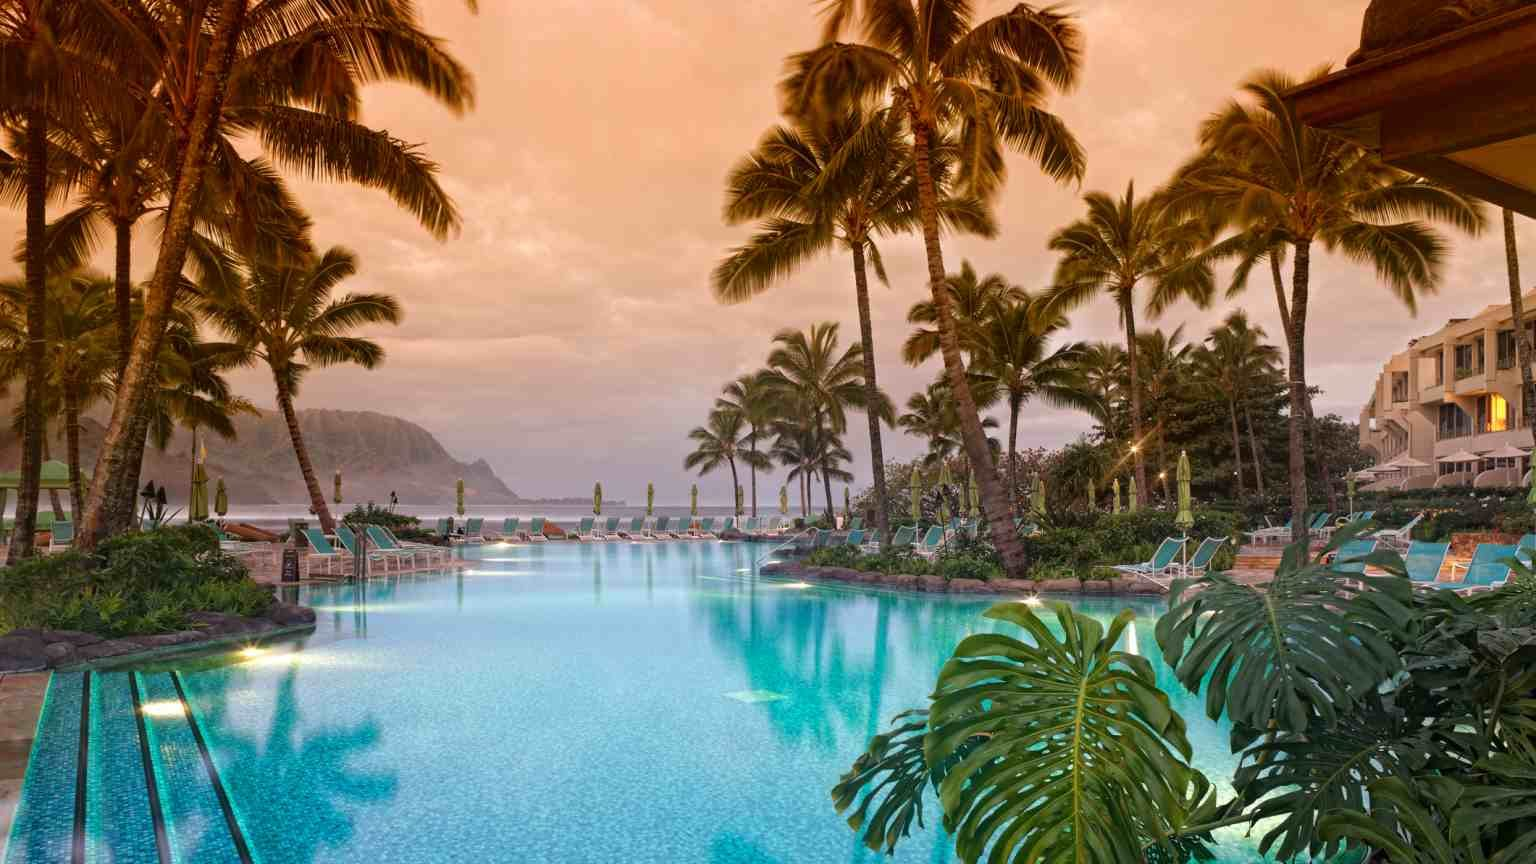 Luxurious Hawiian 5 star resort with view toward ocean and mountains.